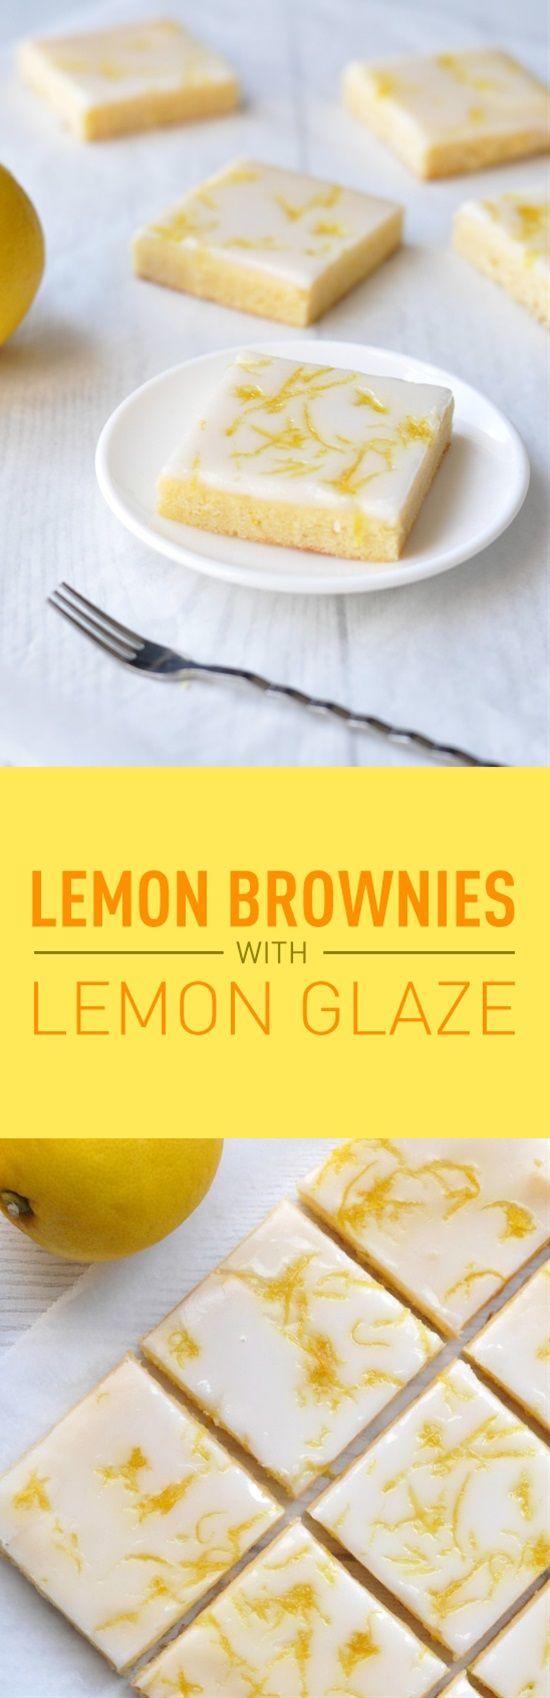 If youâve never had lemon brownies before youâre seriously missing out. Theyâre not like typical chocolate brownies made with dark/milk chocolate. Theyâre not even like blondies made with white chocolate.